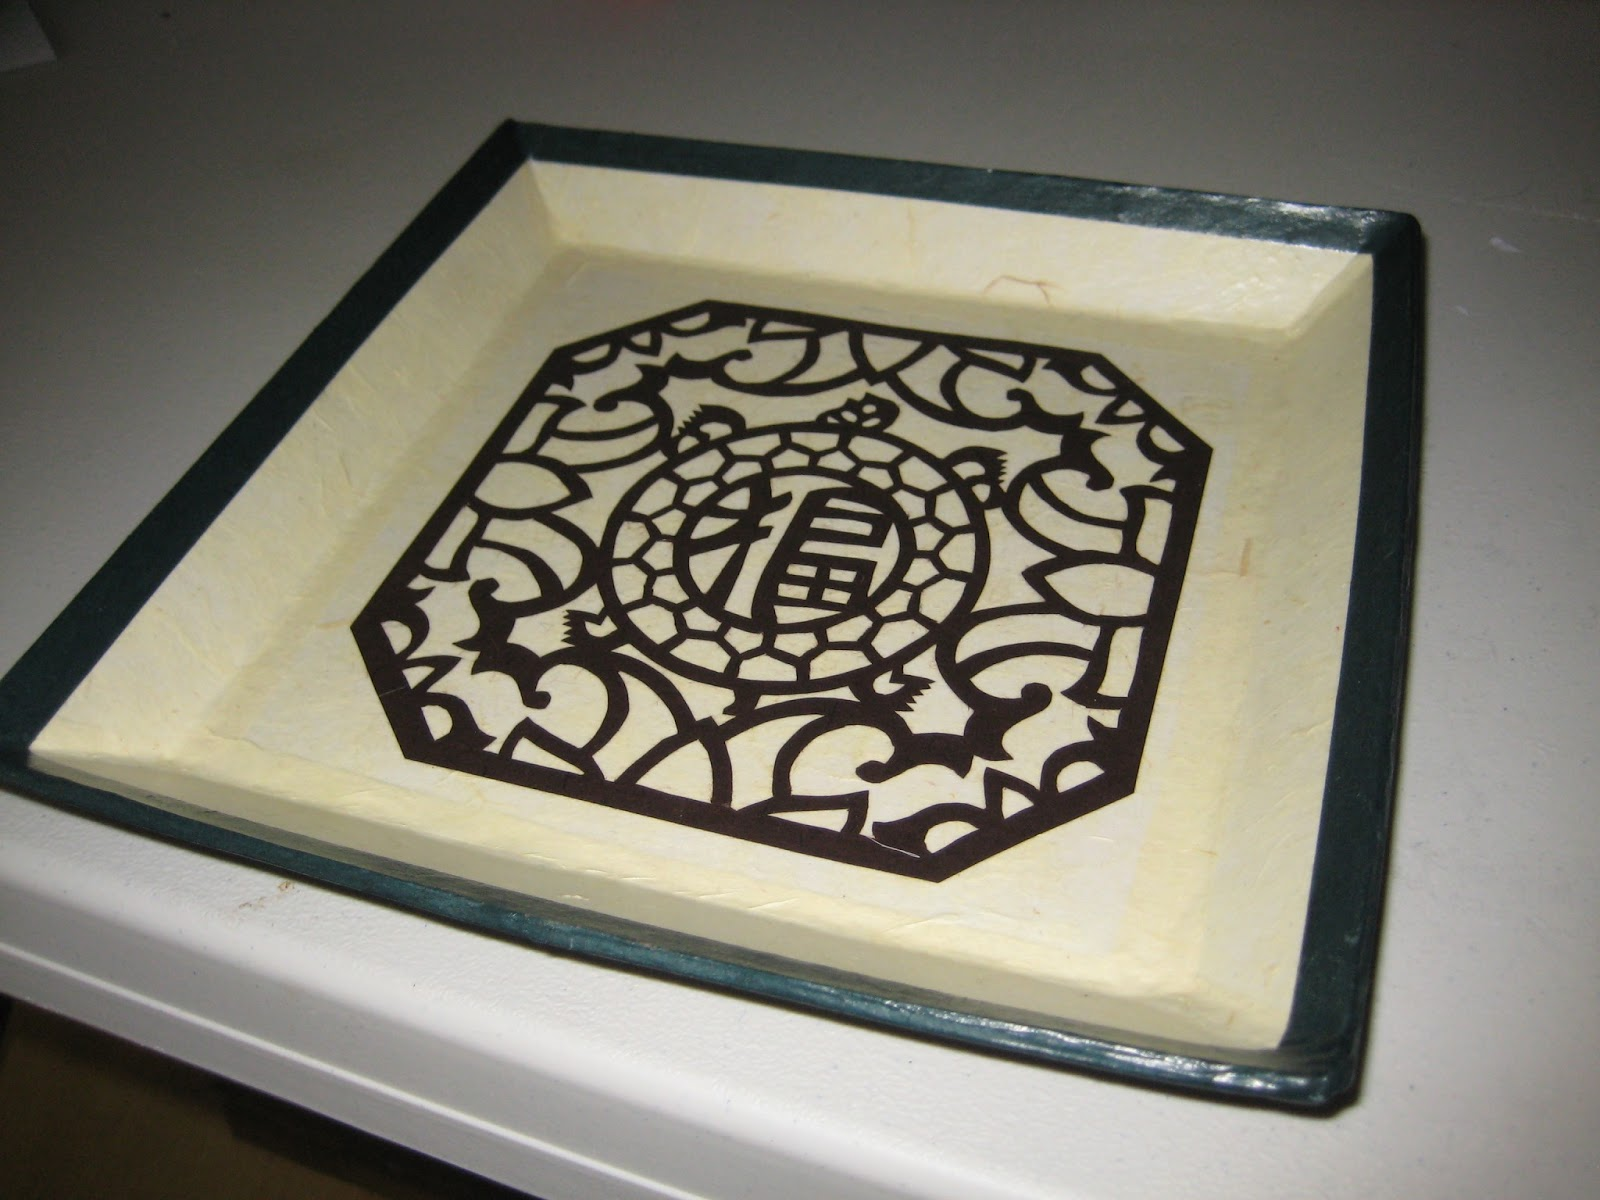 Hanji Naty (한지나티): Trays, Plates and Tea Tables for Square Plate Designs  186ref